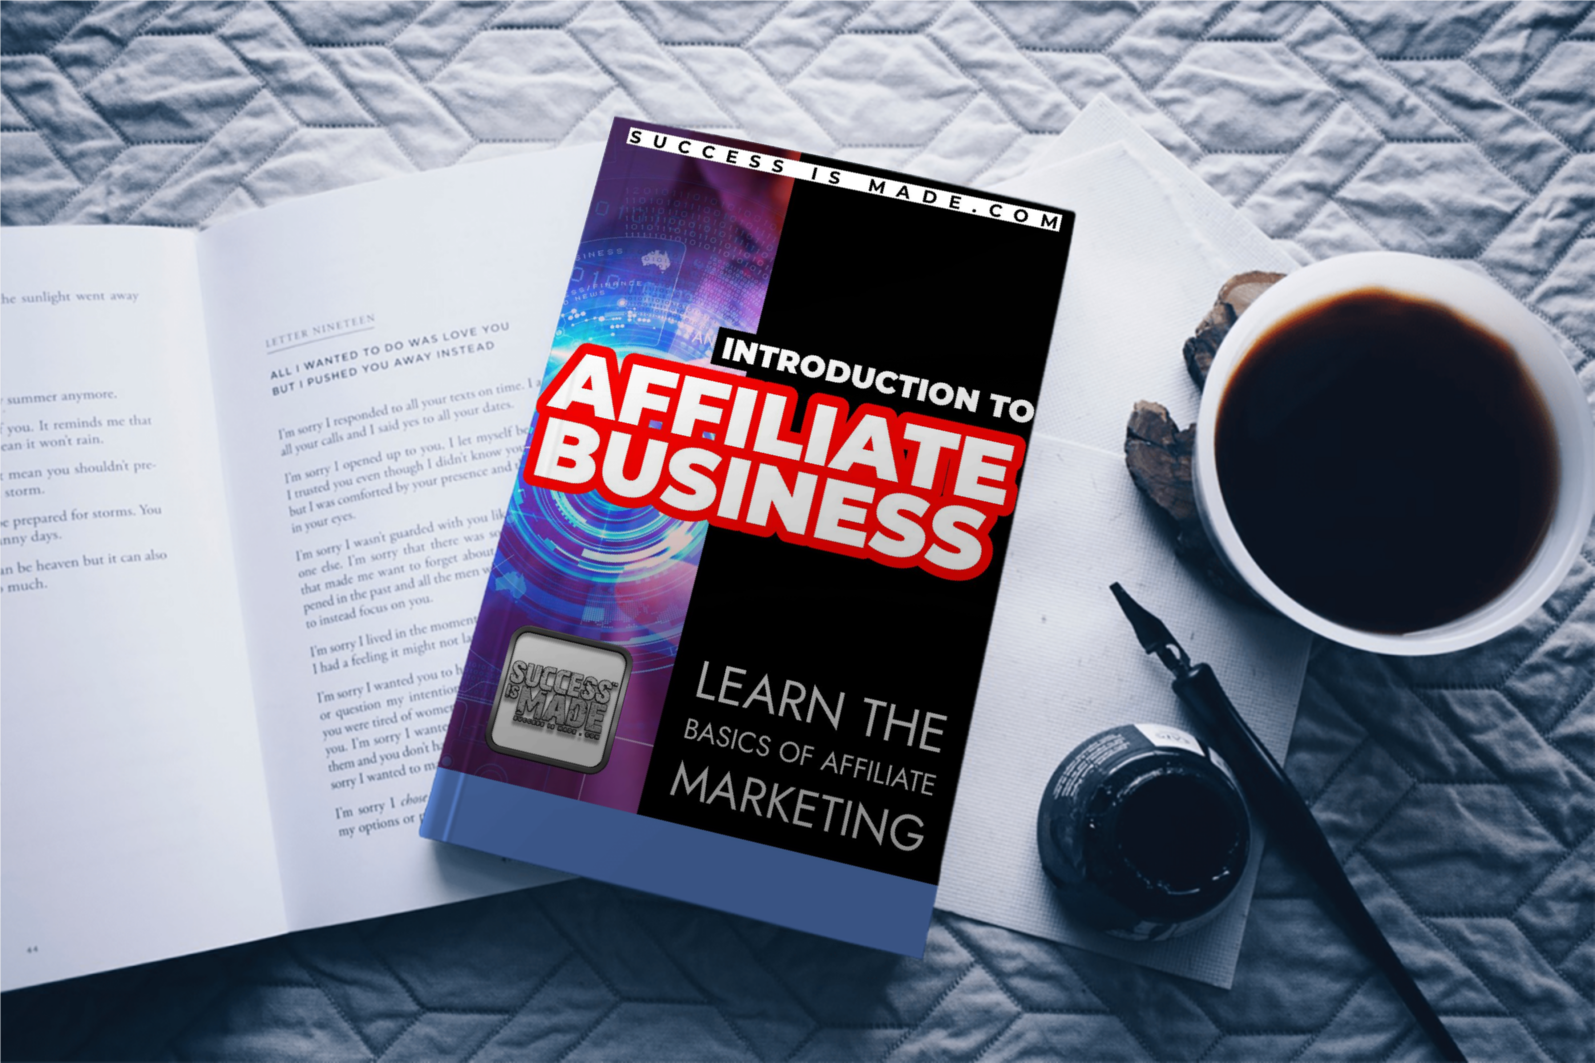 SIM Introduction to Affiliate Business eBook 1